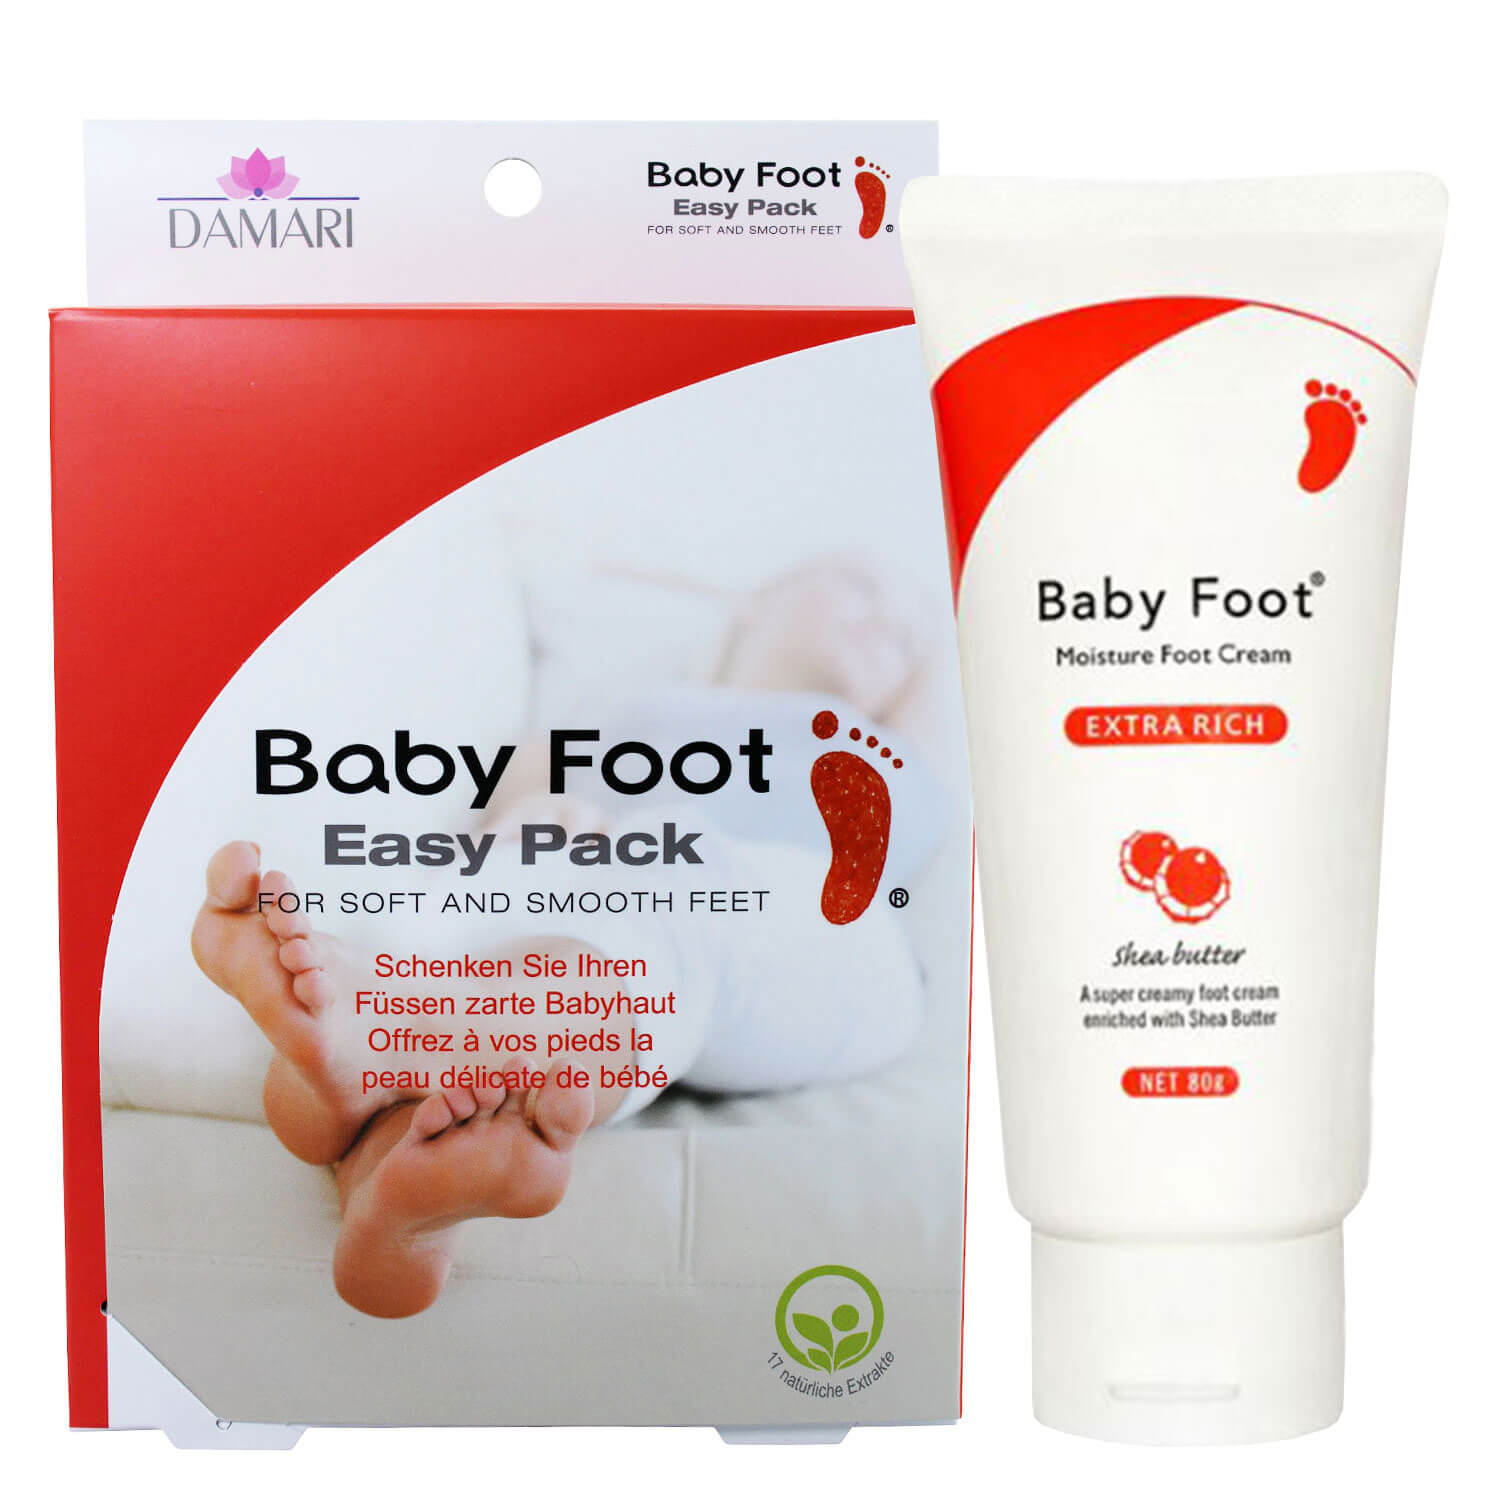 Baby Foot - Easy Pack & Extra Rich Cream Set